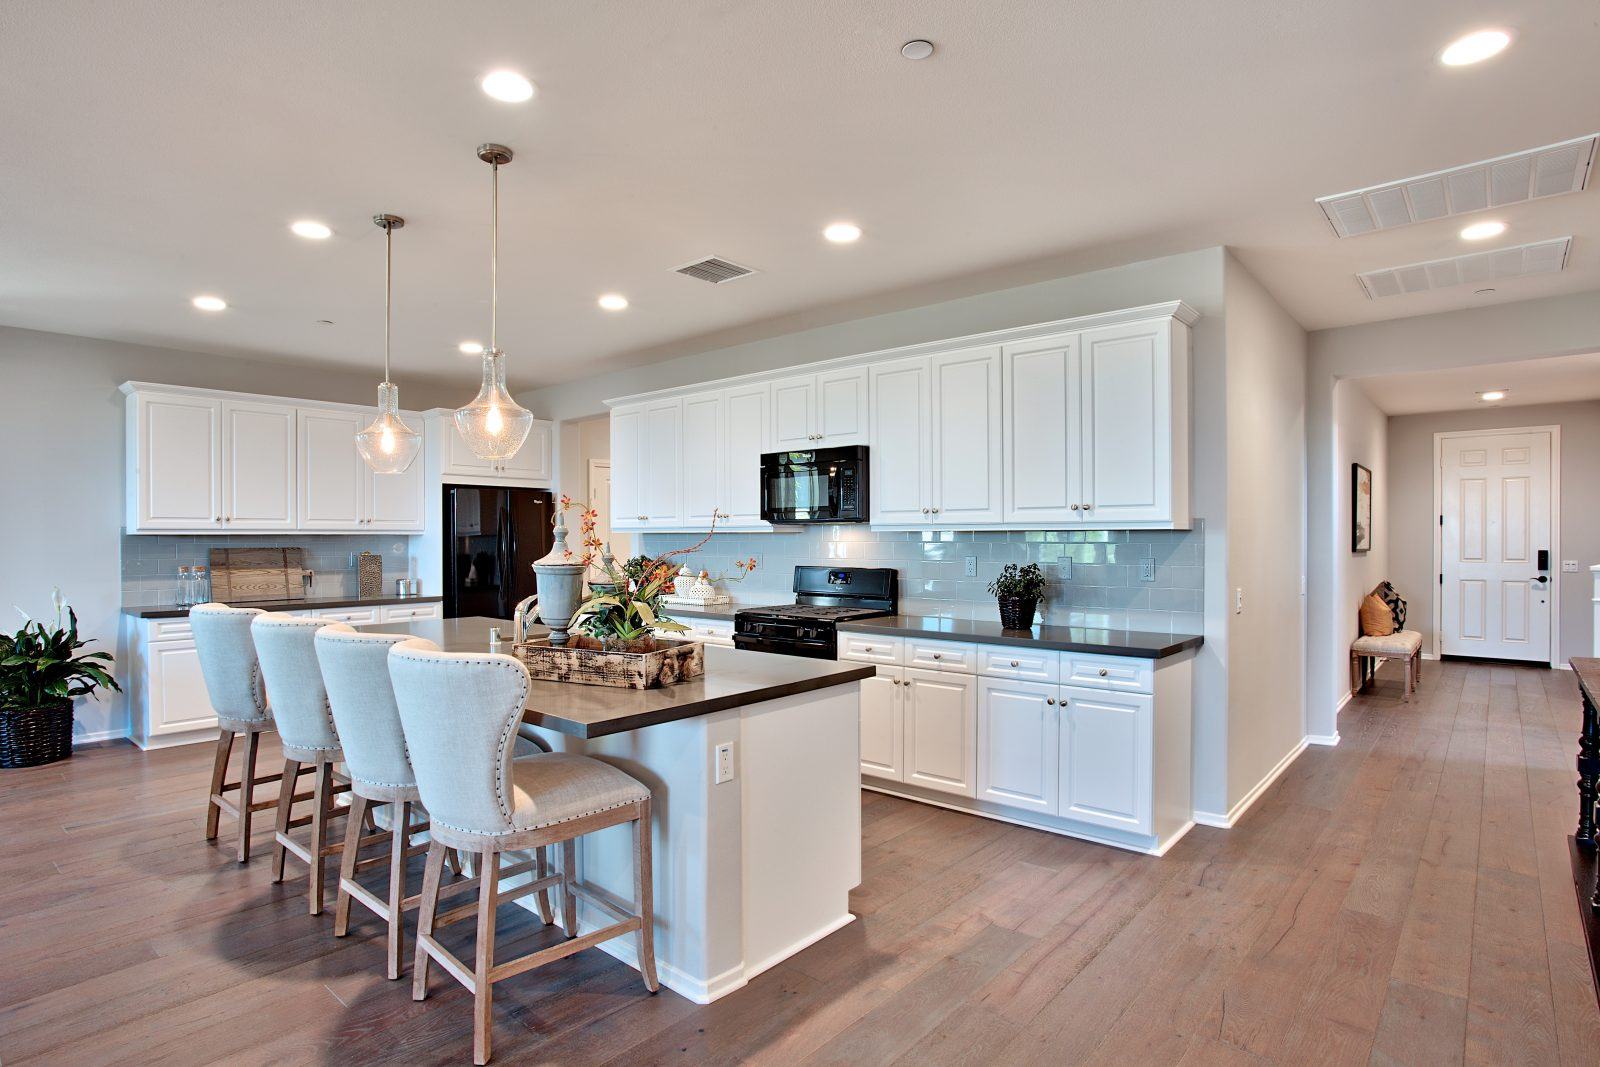 Kitchen | Nectar at Spencers Crossing in Riverside, CA | Brookfield Residential